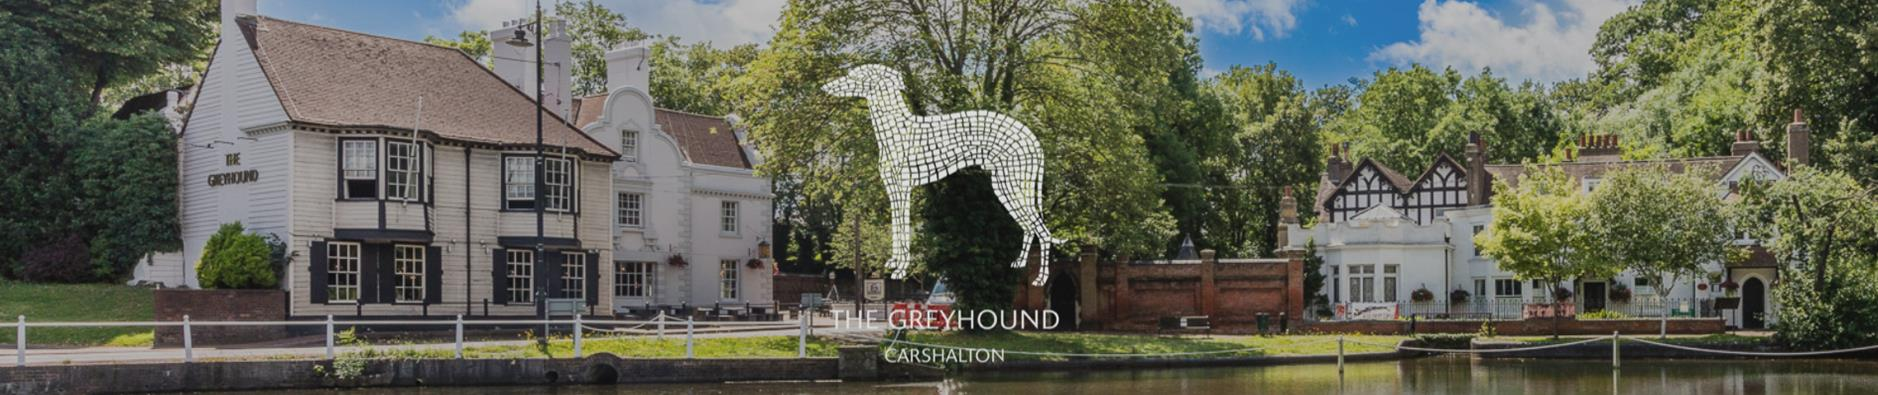 The Greyhound, Carshalton